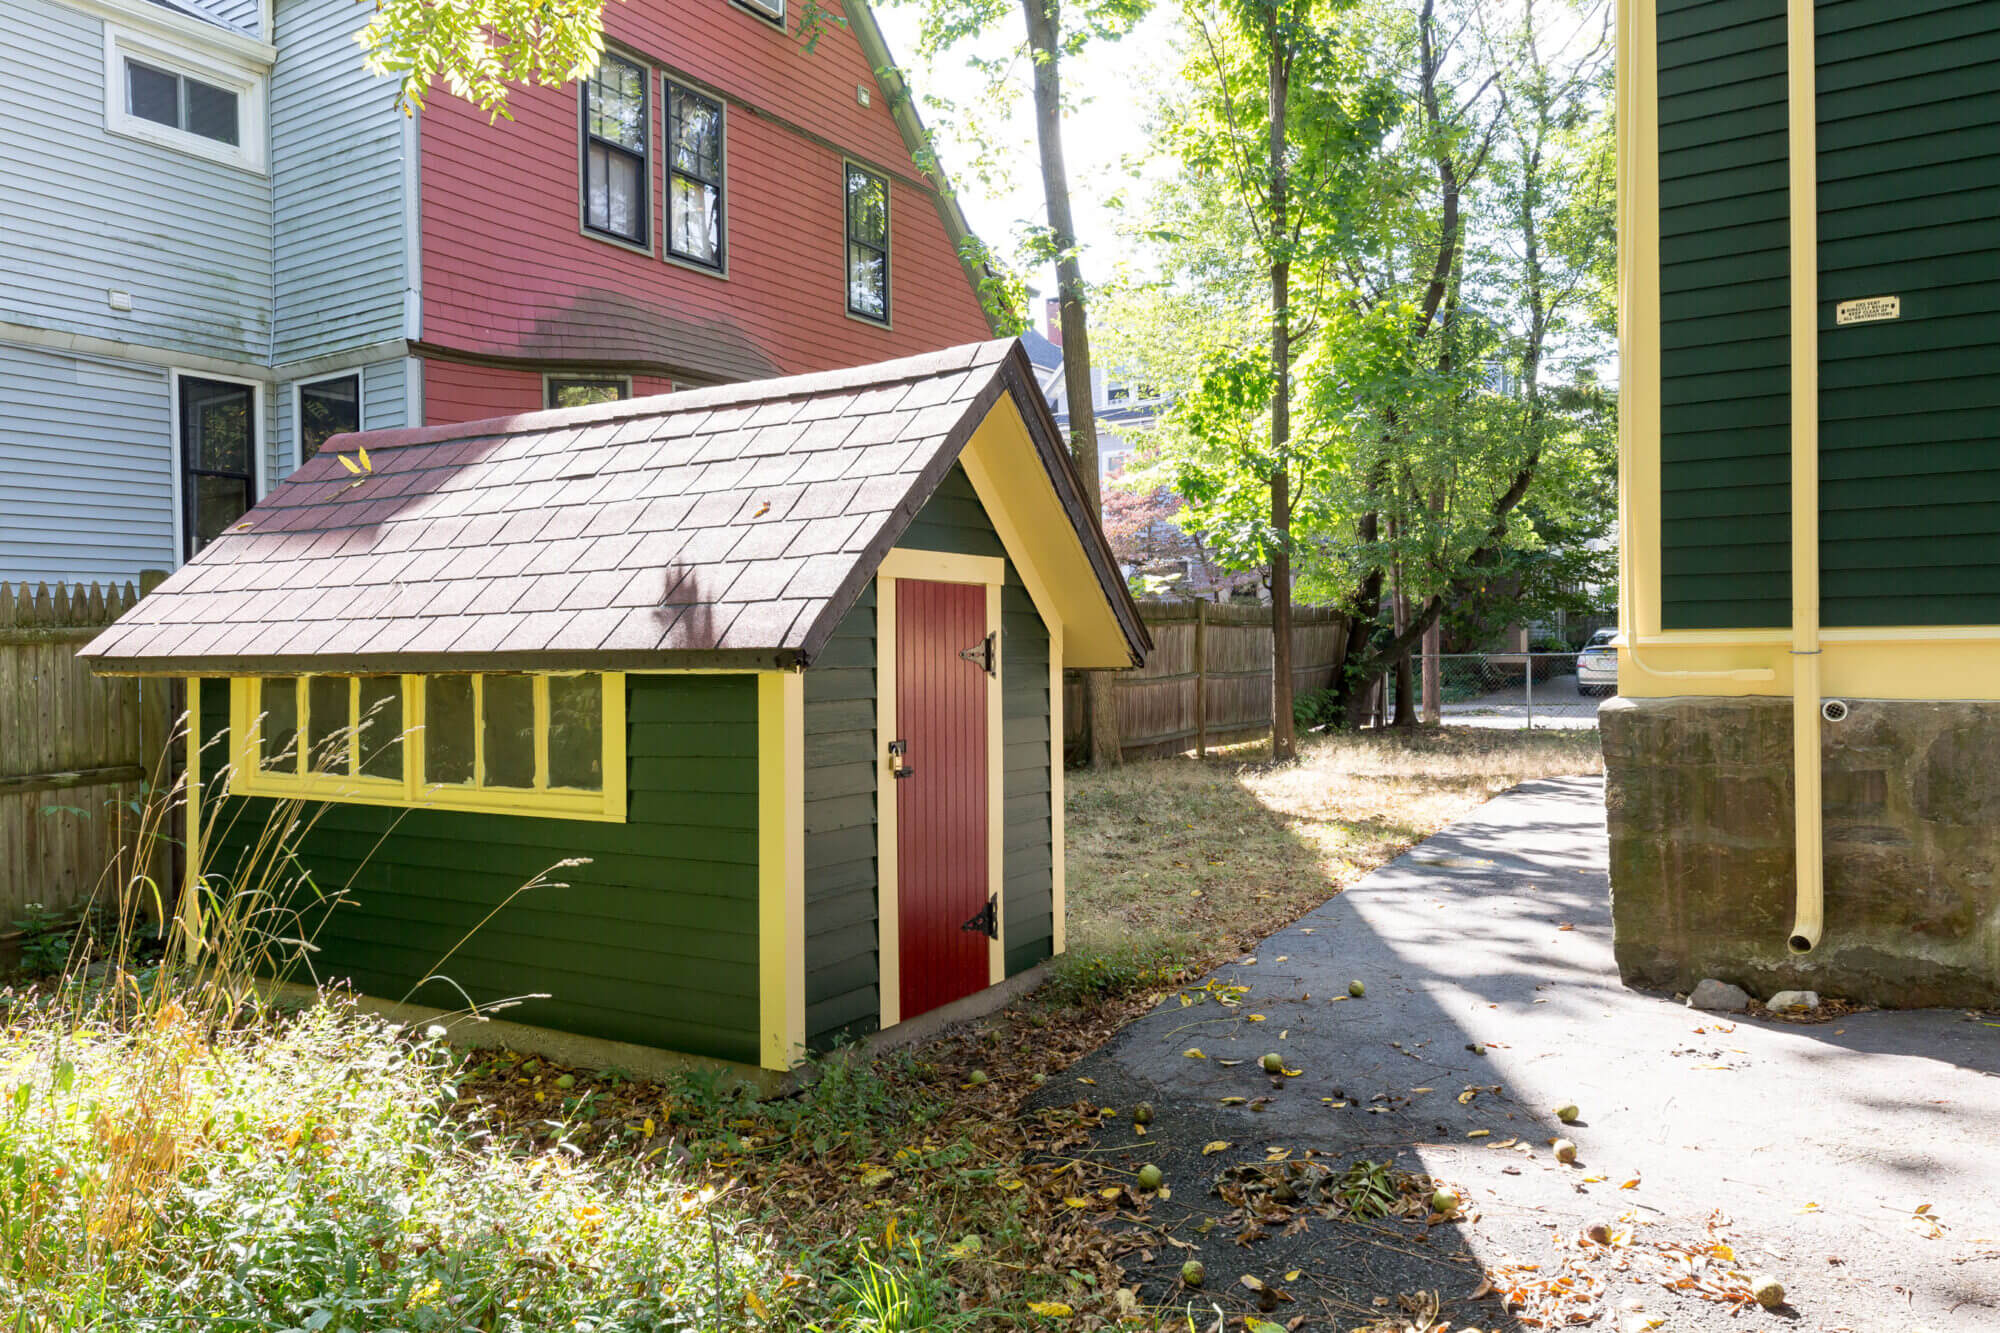 Freshly painted shed in the backyard of the Victorian home